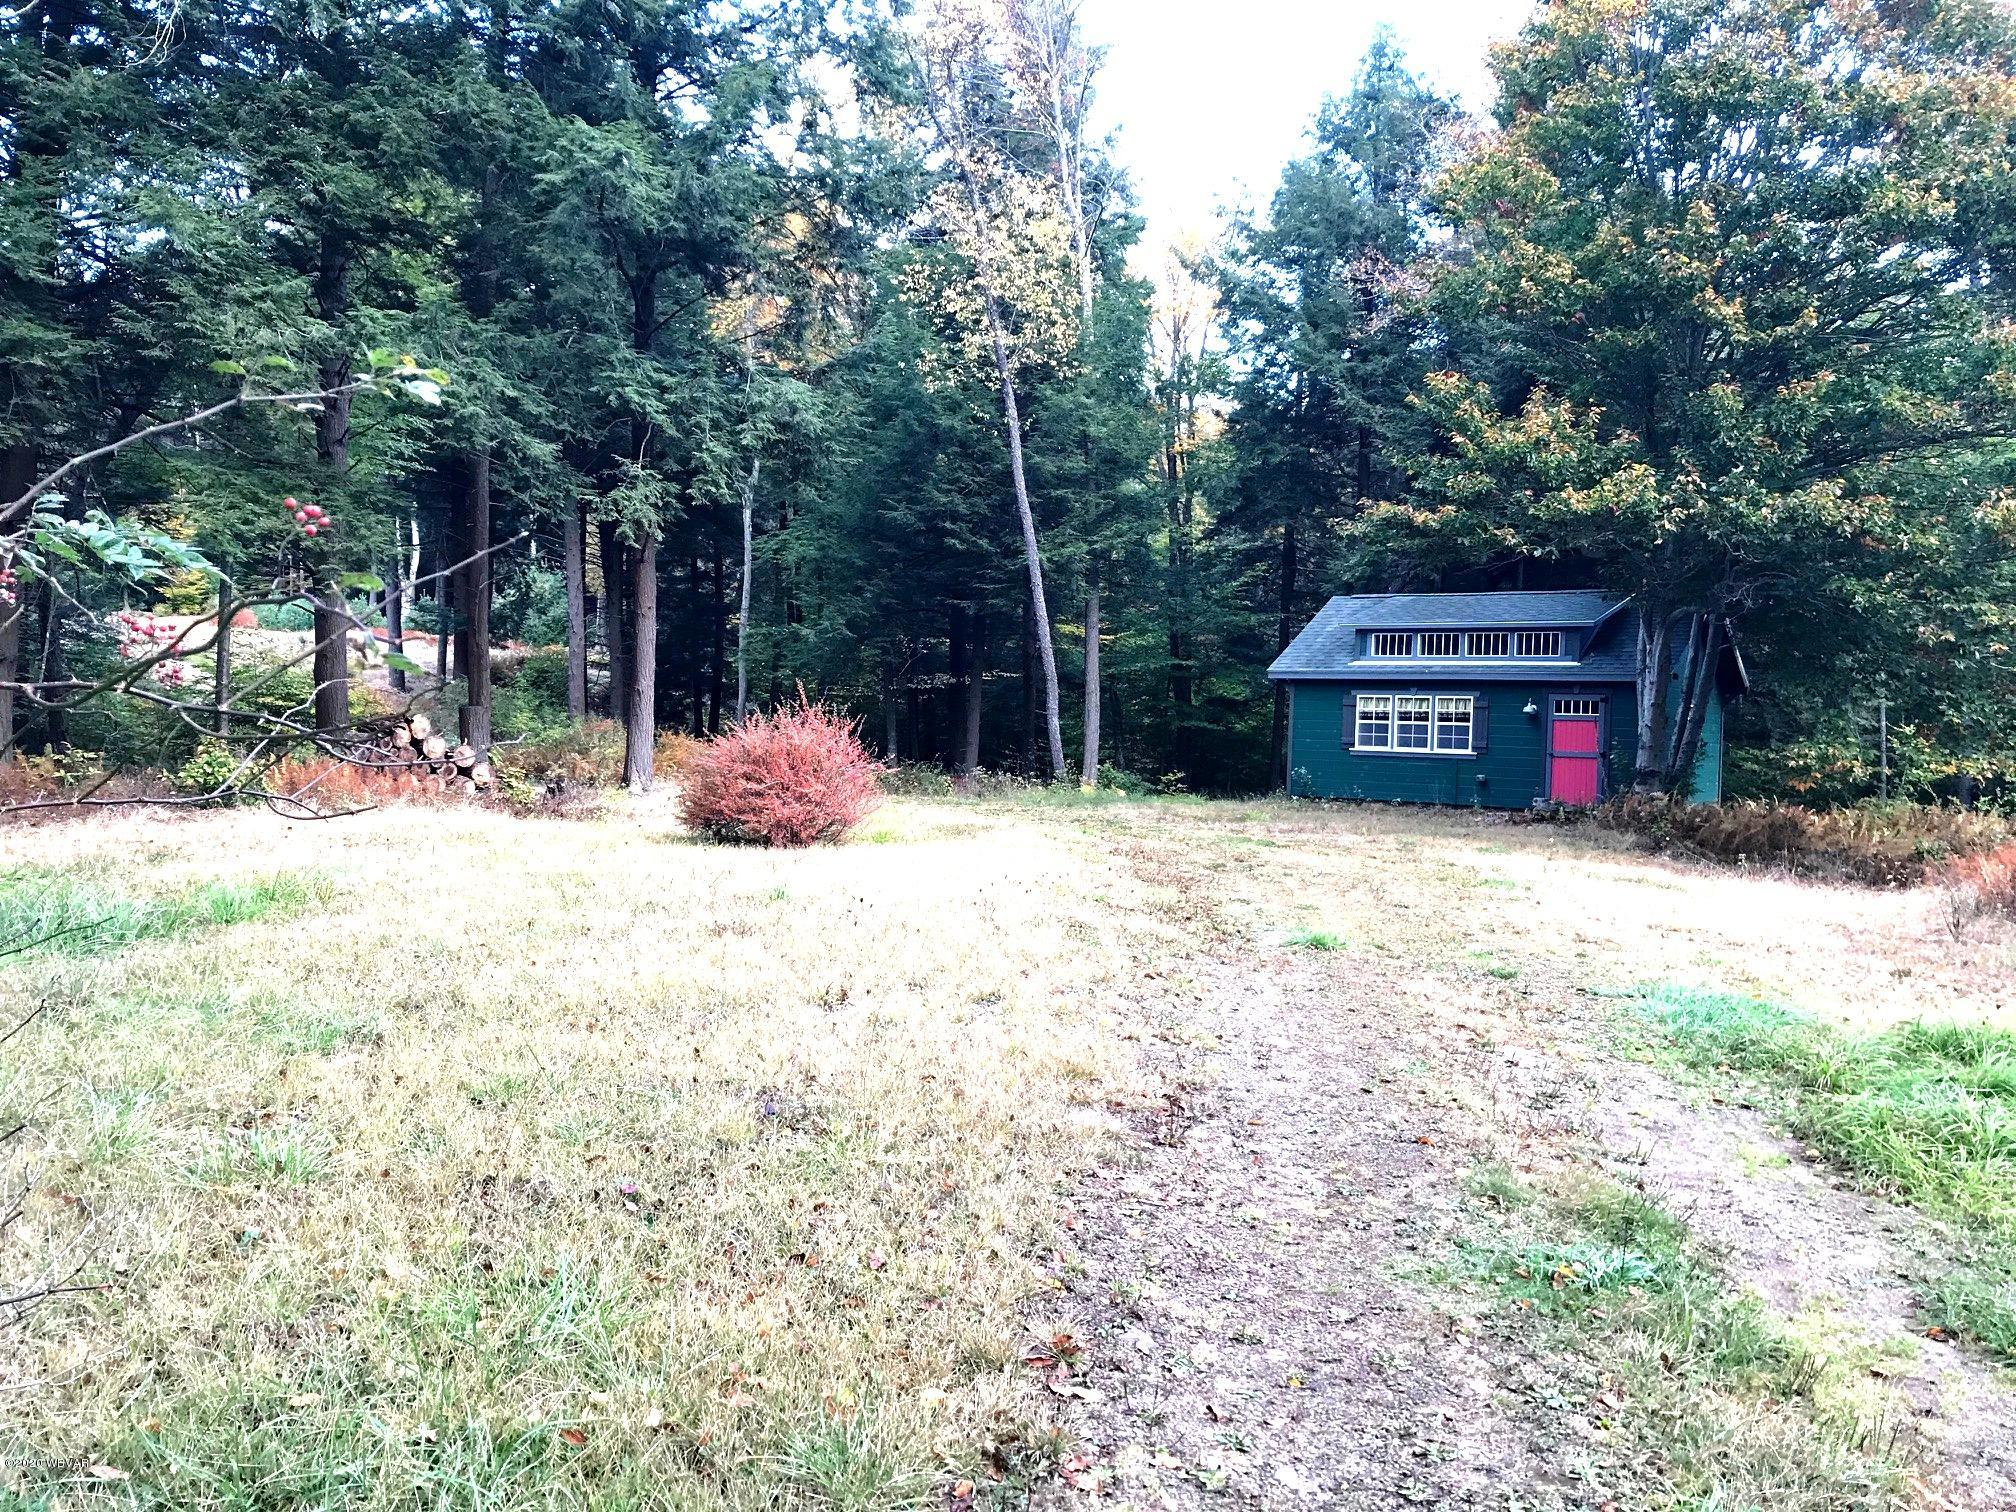 15541 ROUTE 42 HIGHWAY, Eagles Mere, PA 17731, ,Land,For sale,ROUTE 42,WB-86670